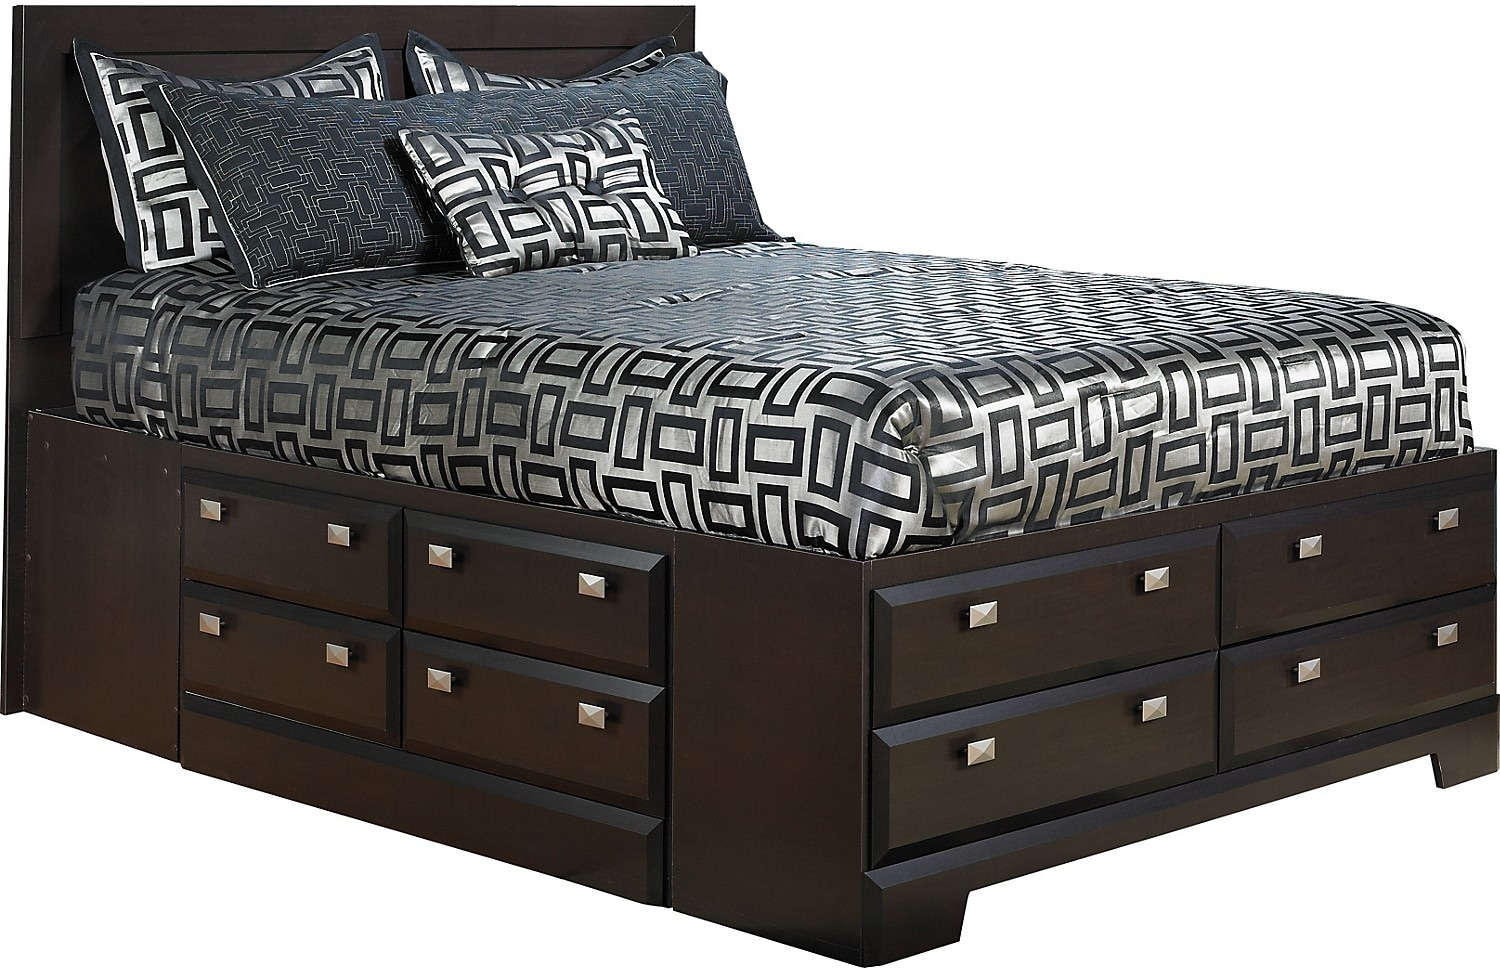 Bedroom Furniture - Yorkdale Queen Bed with Storage